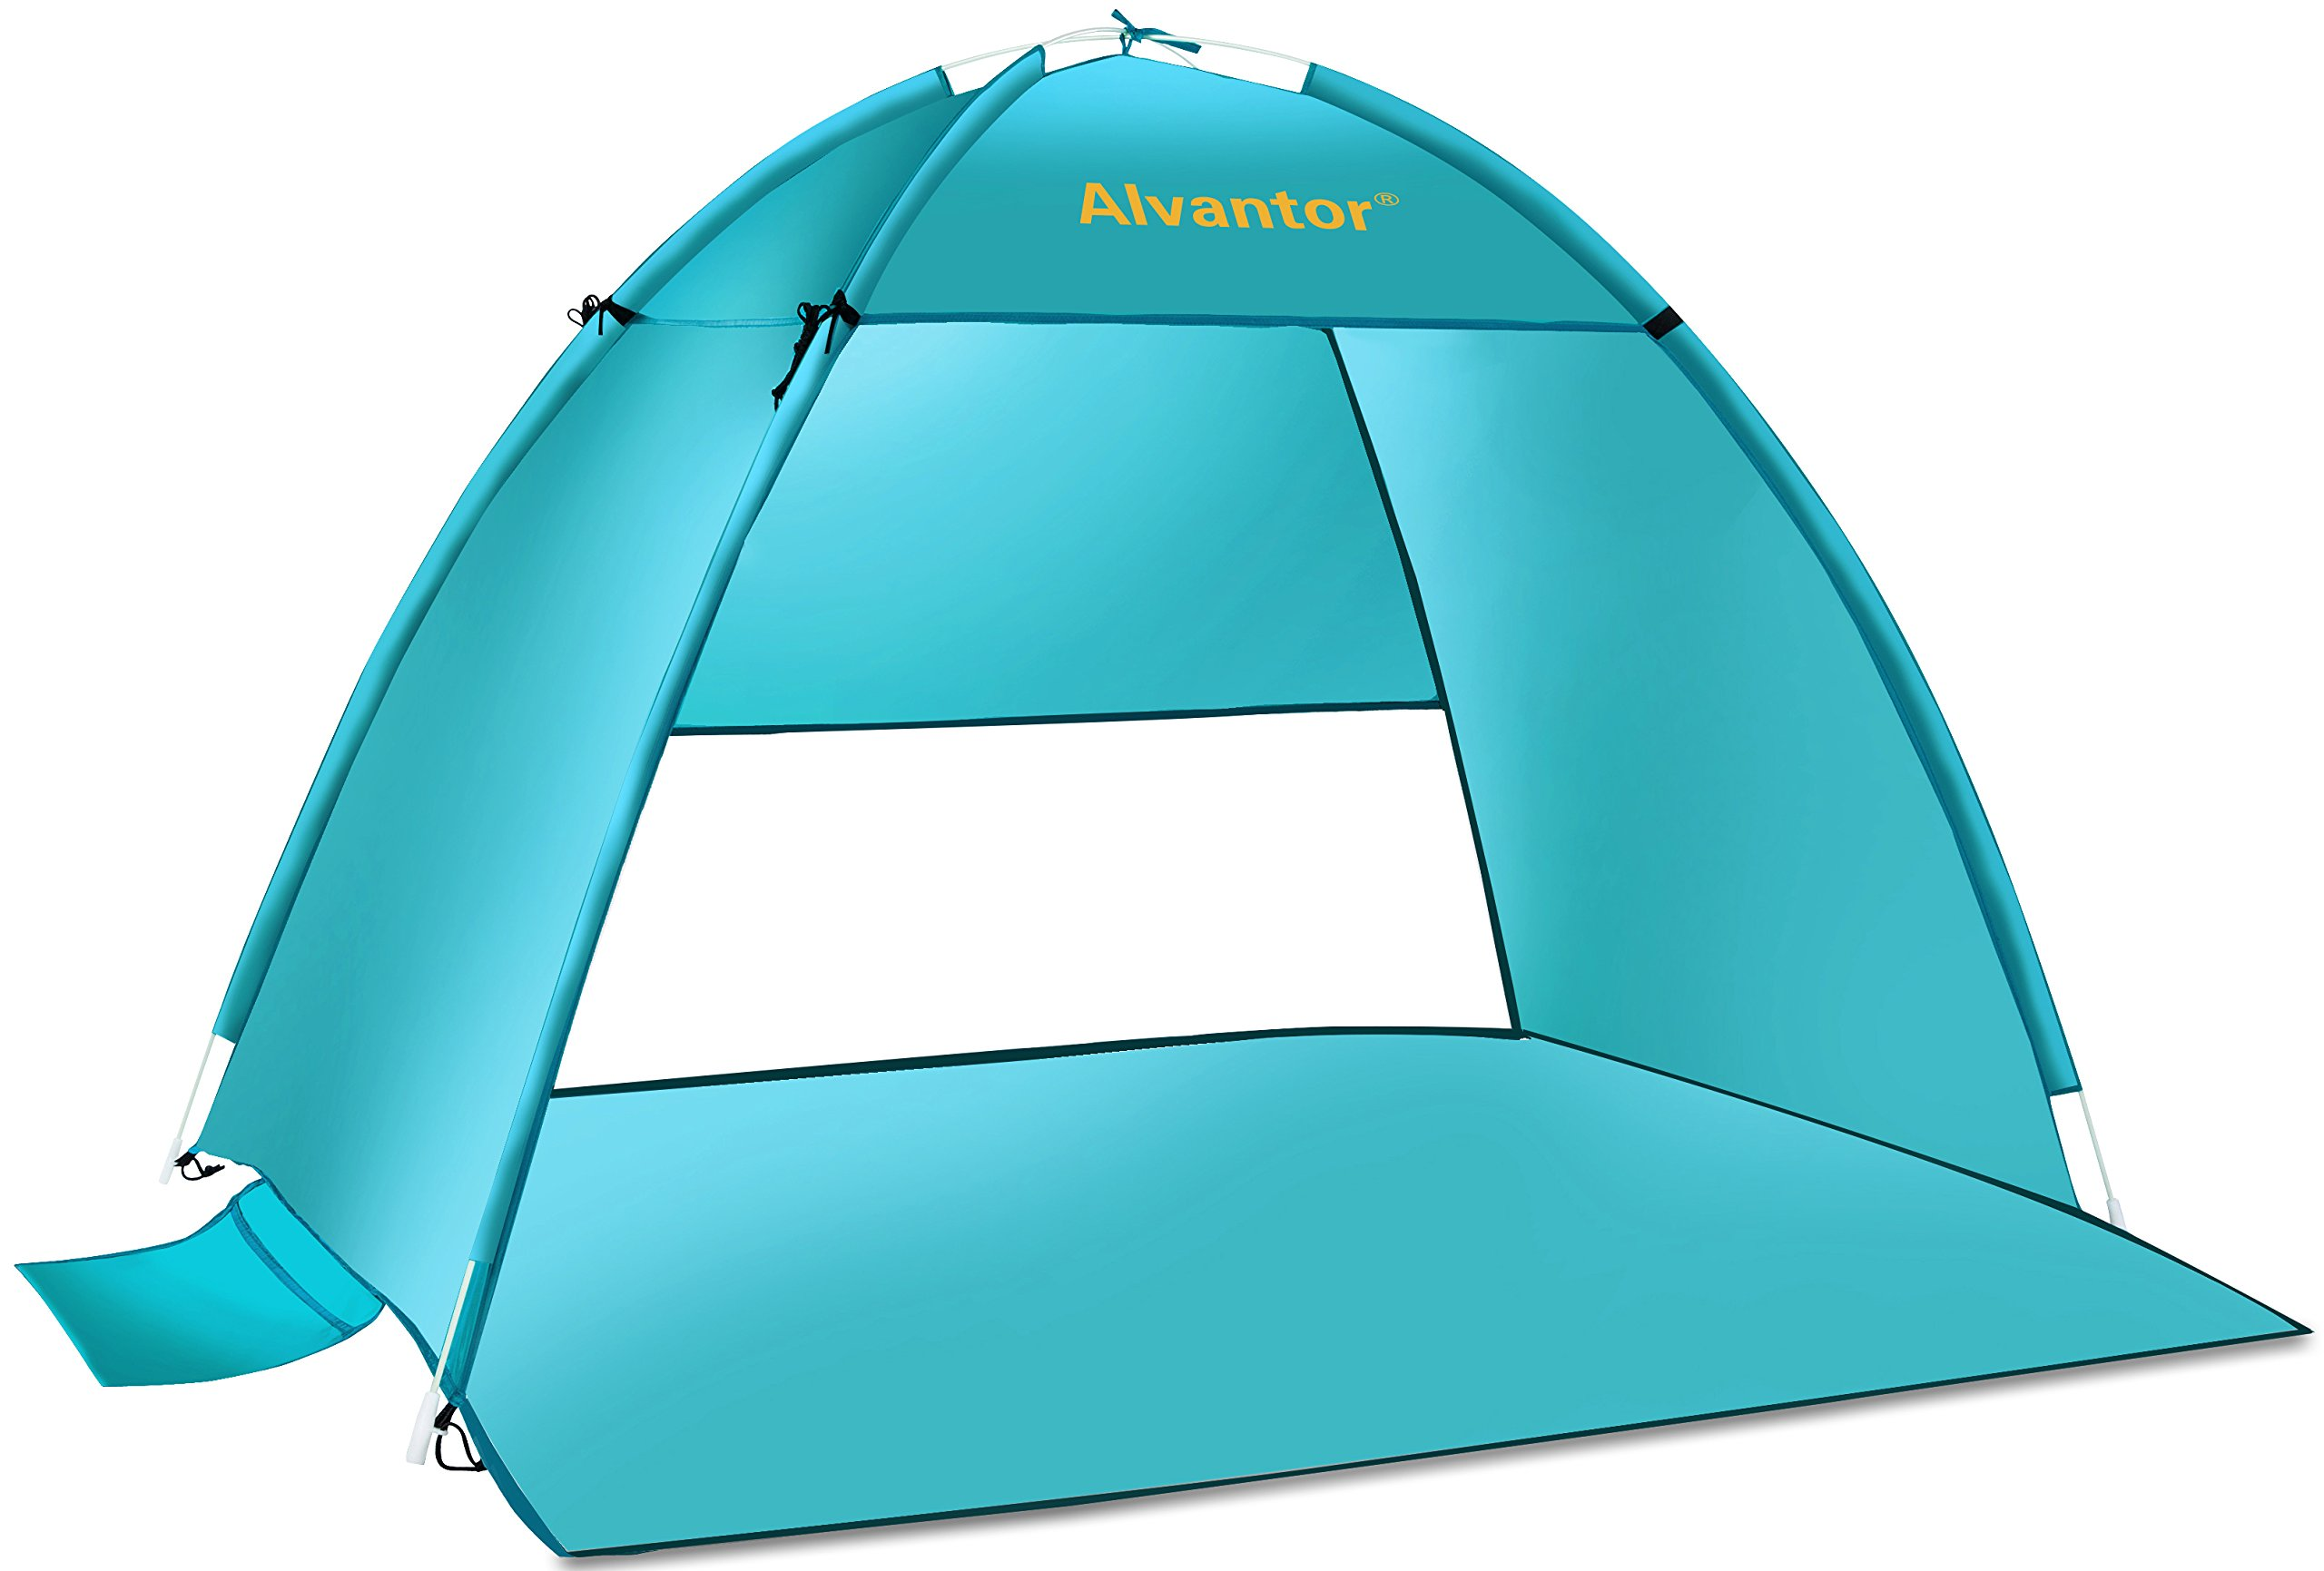 Alvantor Coolhut Beach Tent Beach Umbrella Outdoor Sun Shelter Cabana Automatic Pop Up UPF 50+ Sun shade Portable Camping Fishing Hiking Canopy Easy Setup Windproof (PATENT PENDING) 7014V 1-3 Person by Alvantor